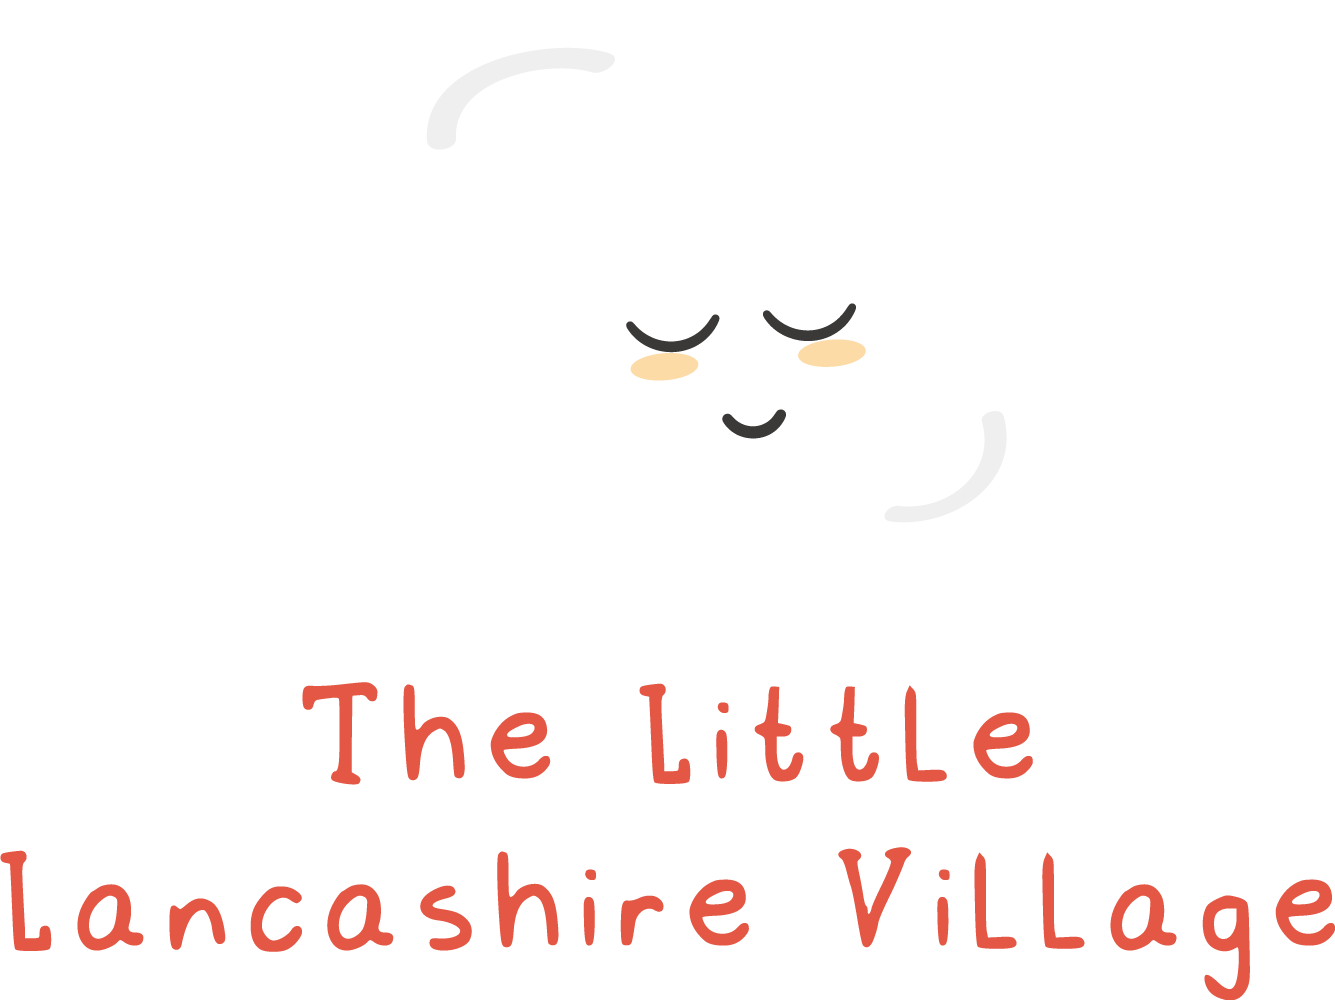 The Little Lancashire Village